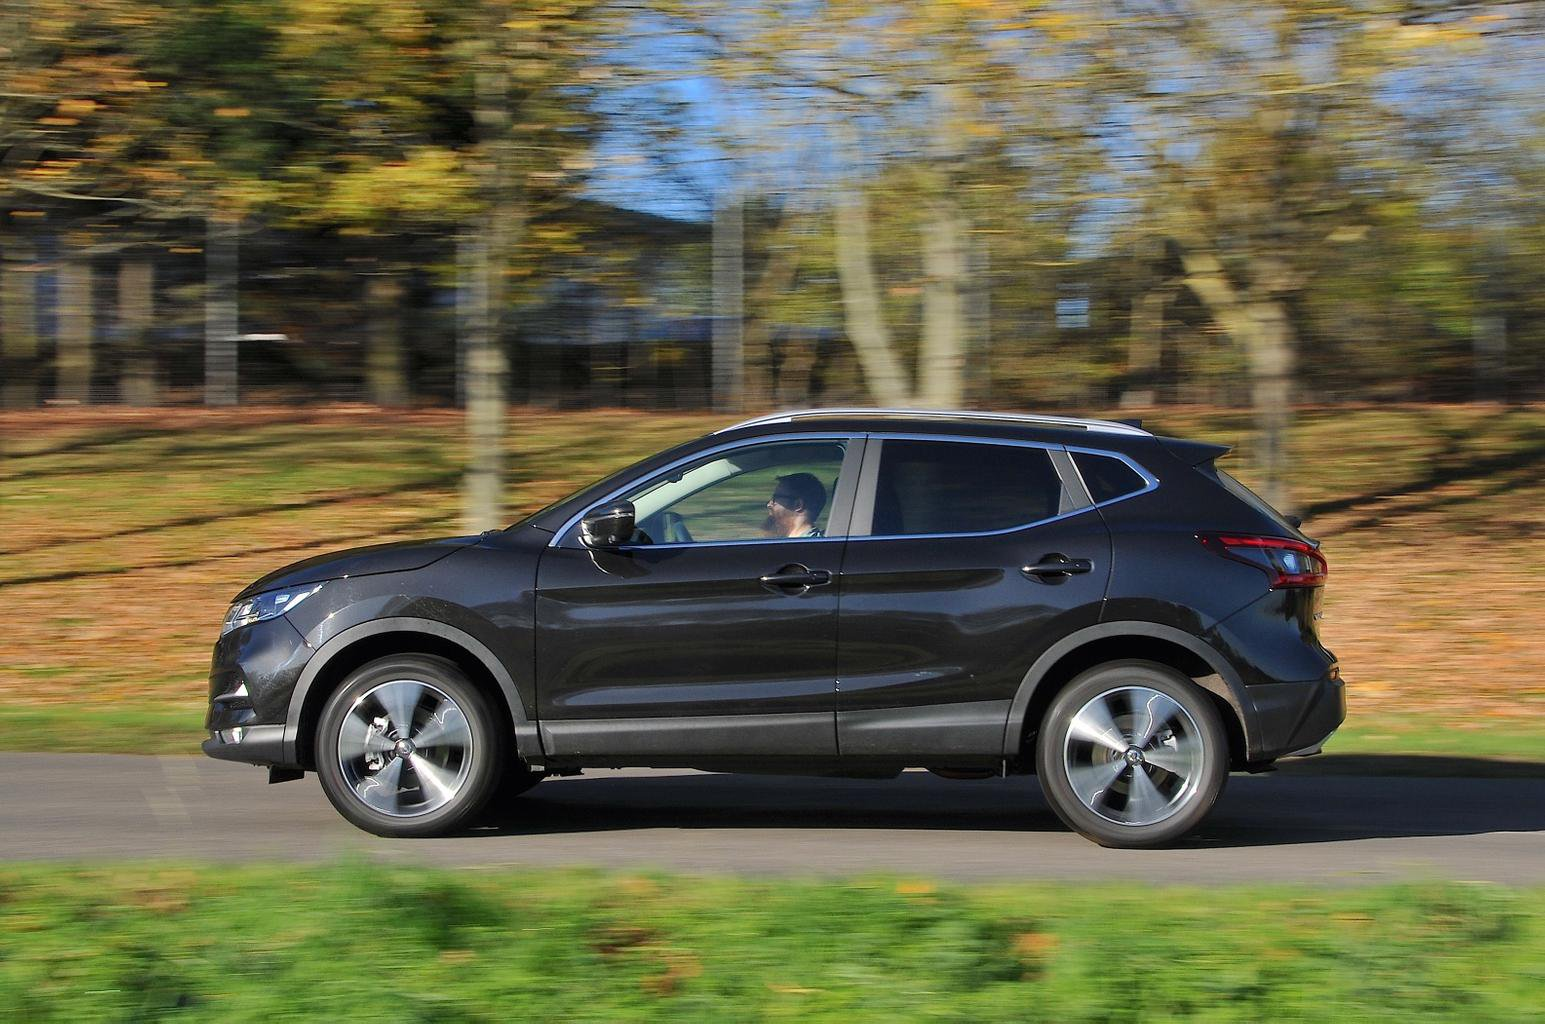 New Nissan Qashqai long-term review